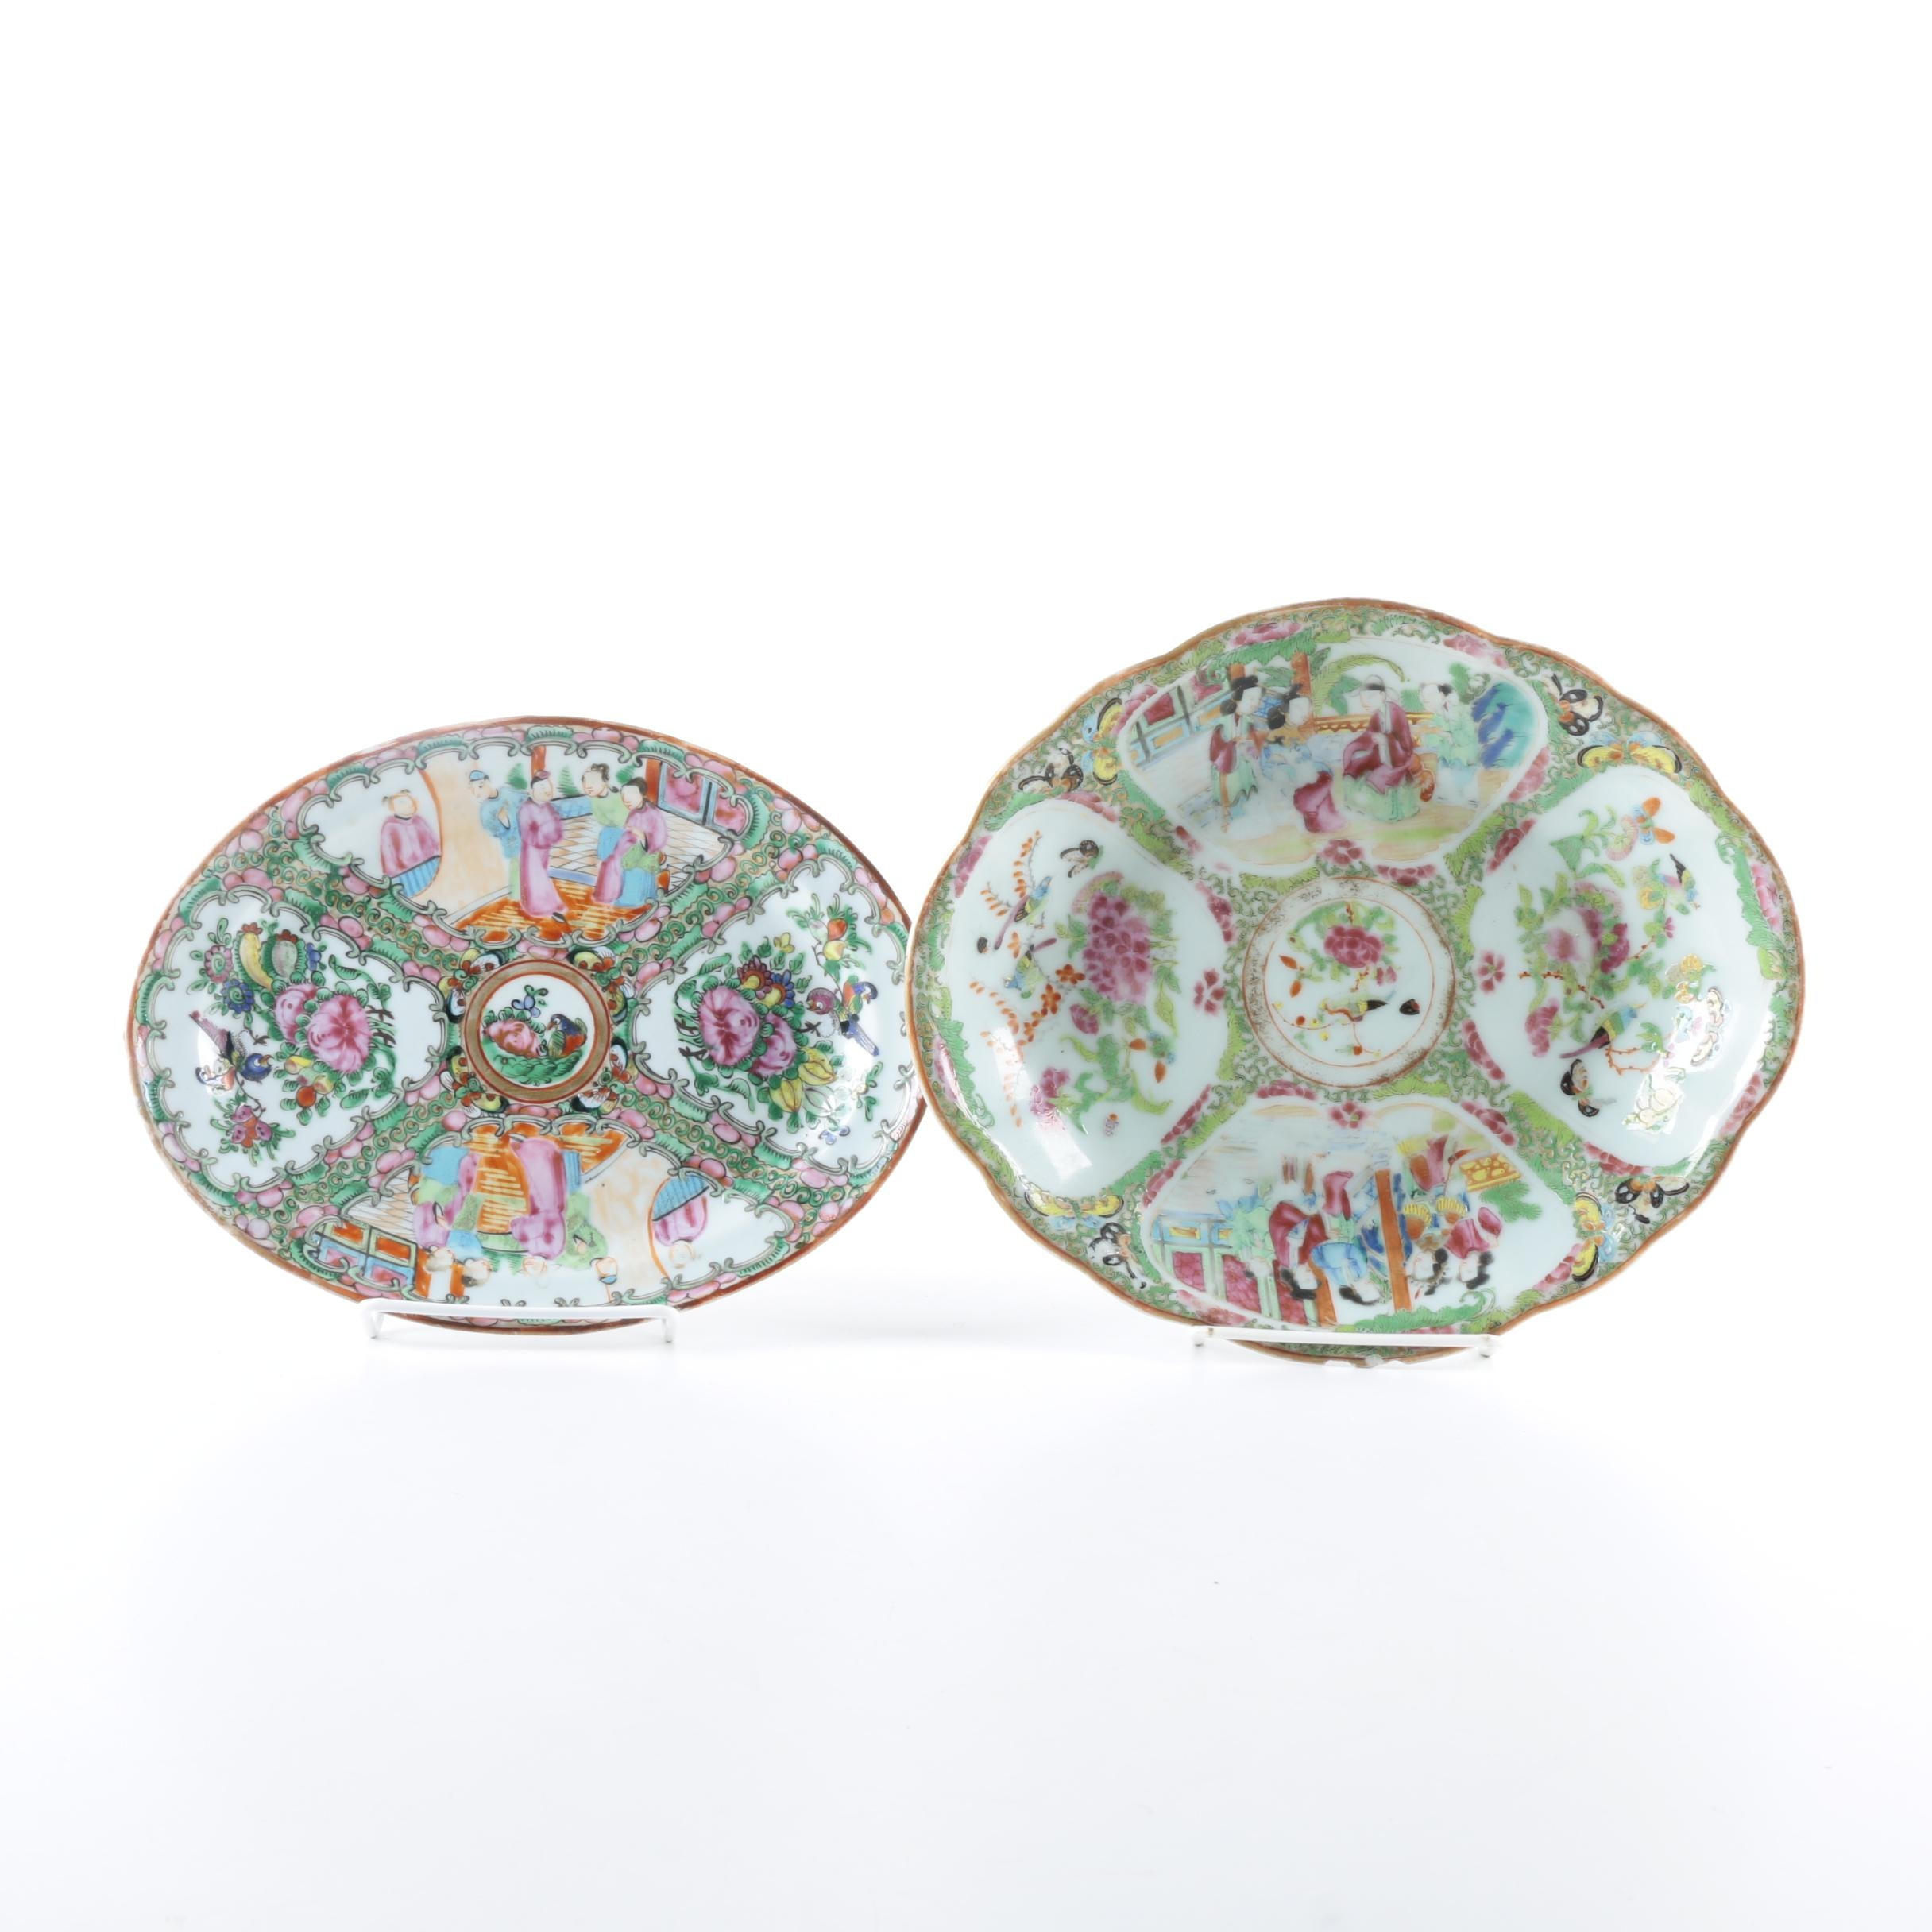 Pair of East Asian Themed Decorative Plates